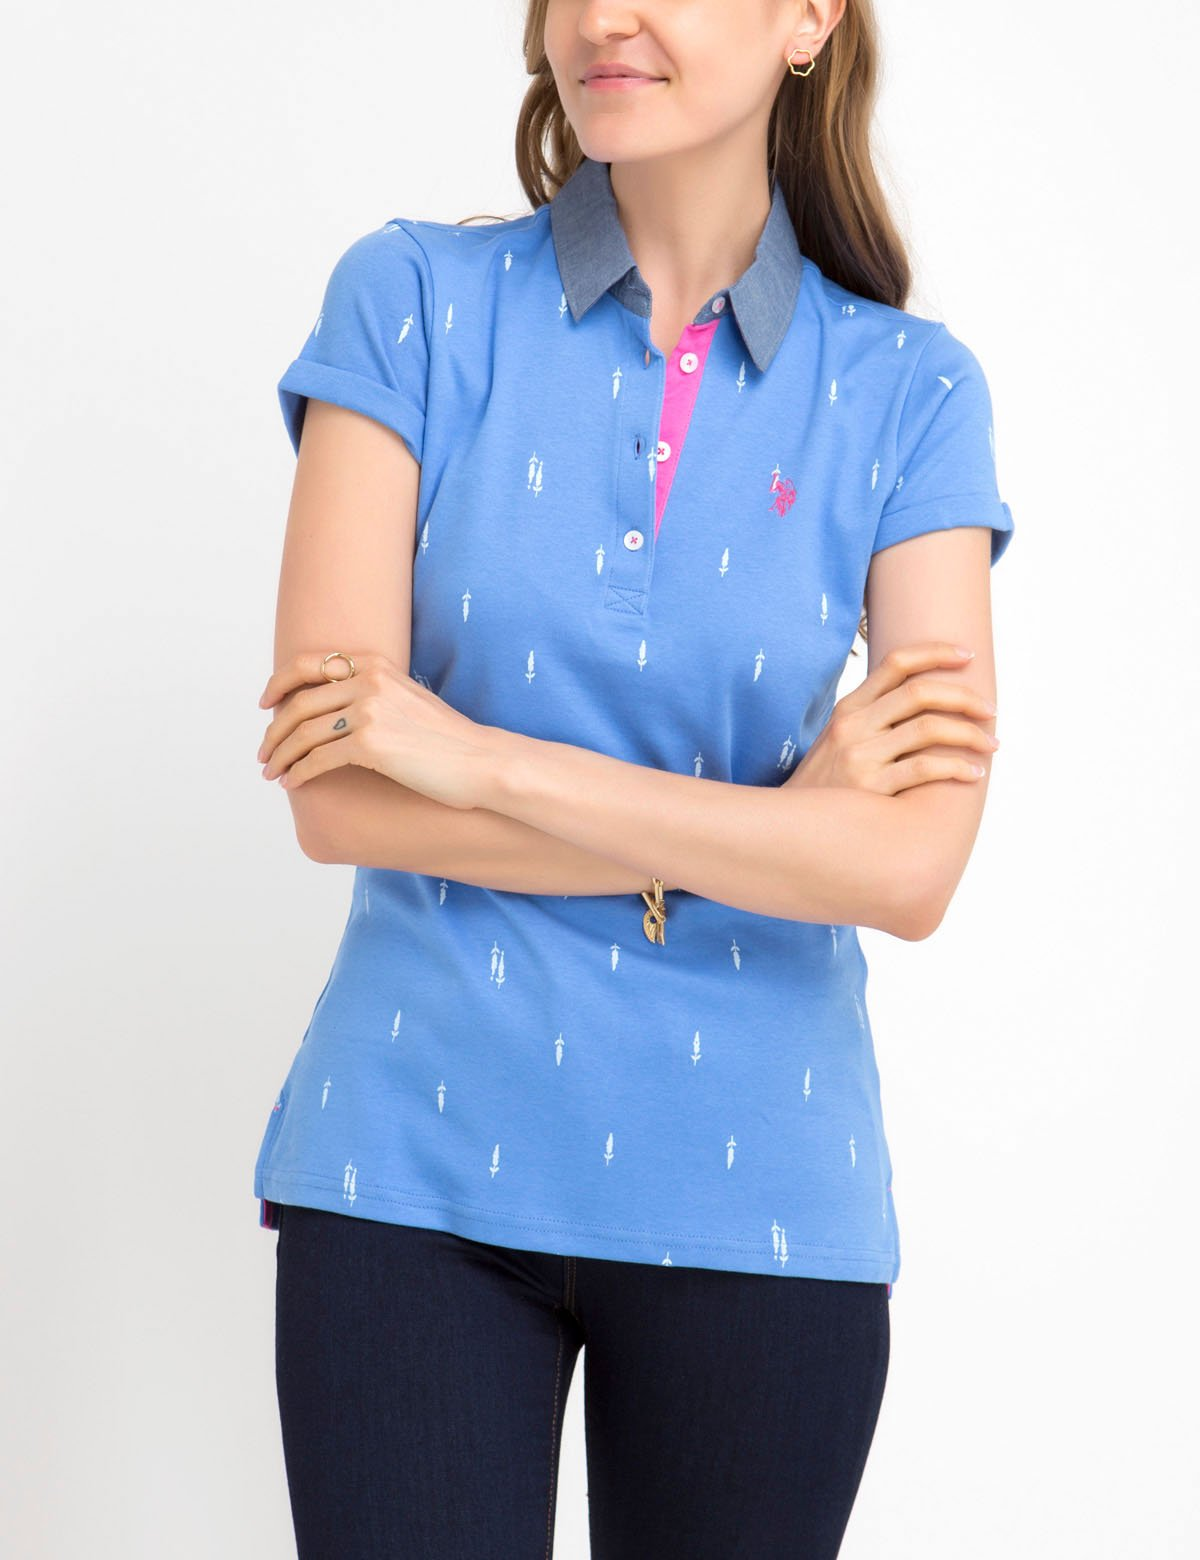 PREMIUM PRINT POLO SHIRT WITH CHAMBRAY COLLAR - U.S. Polo Assn.